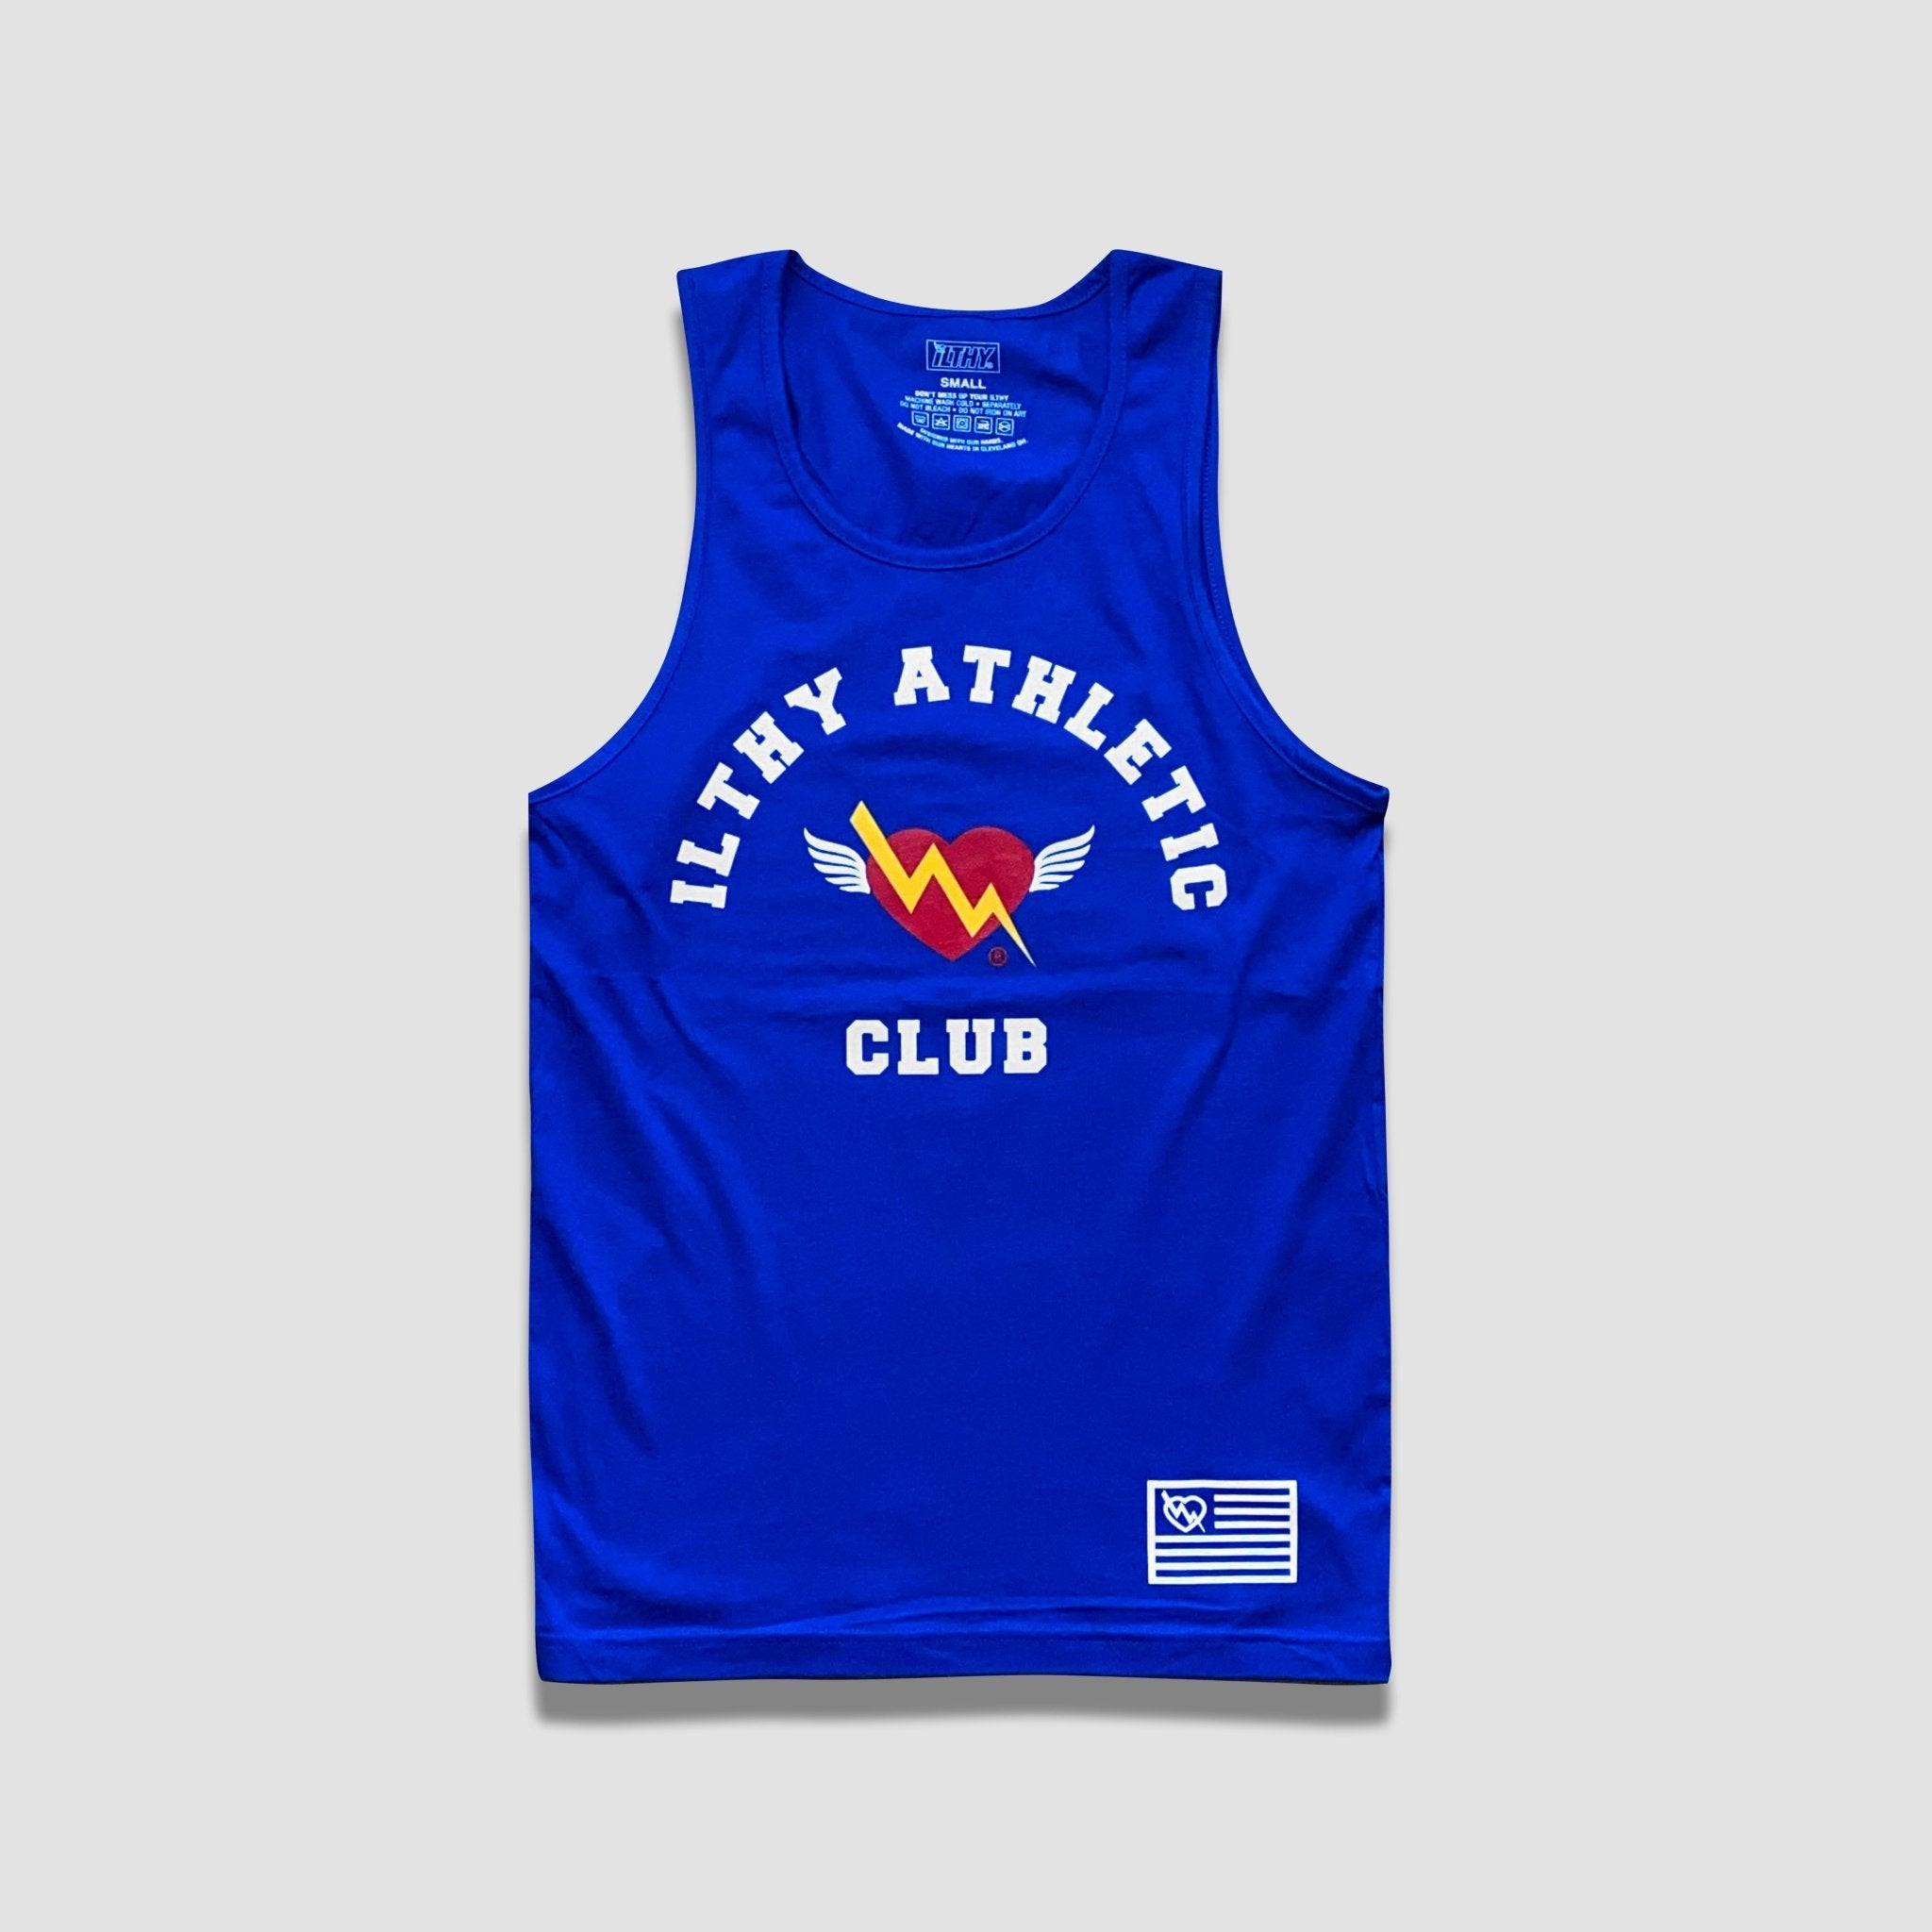 ILTHY Athletic Club Sport Tank (Blue) - ILTHY®